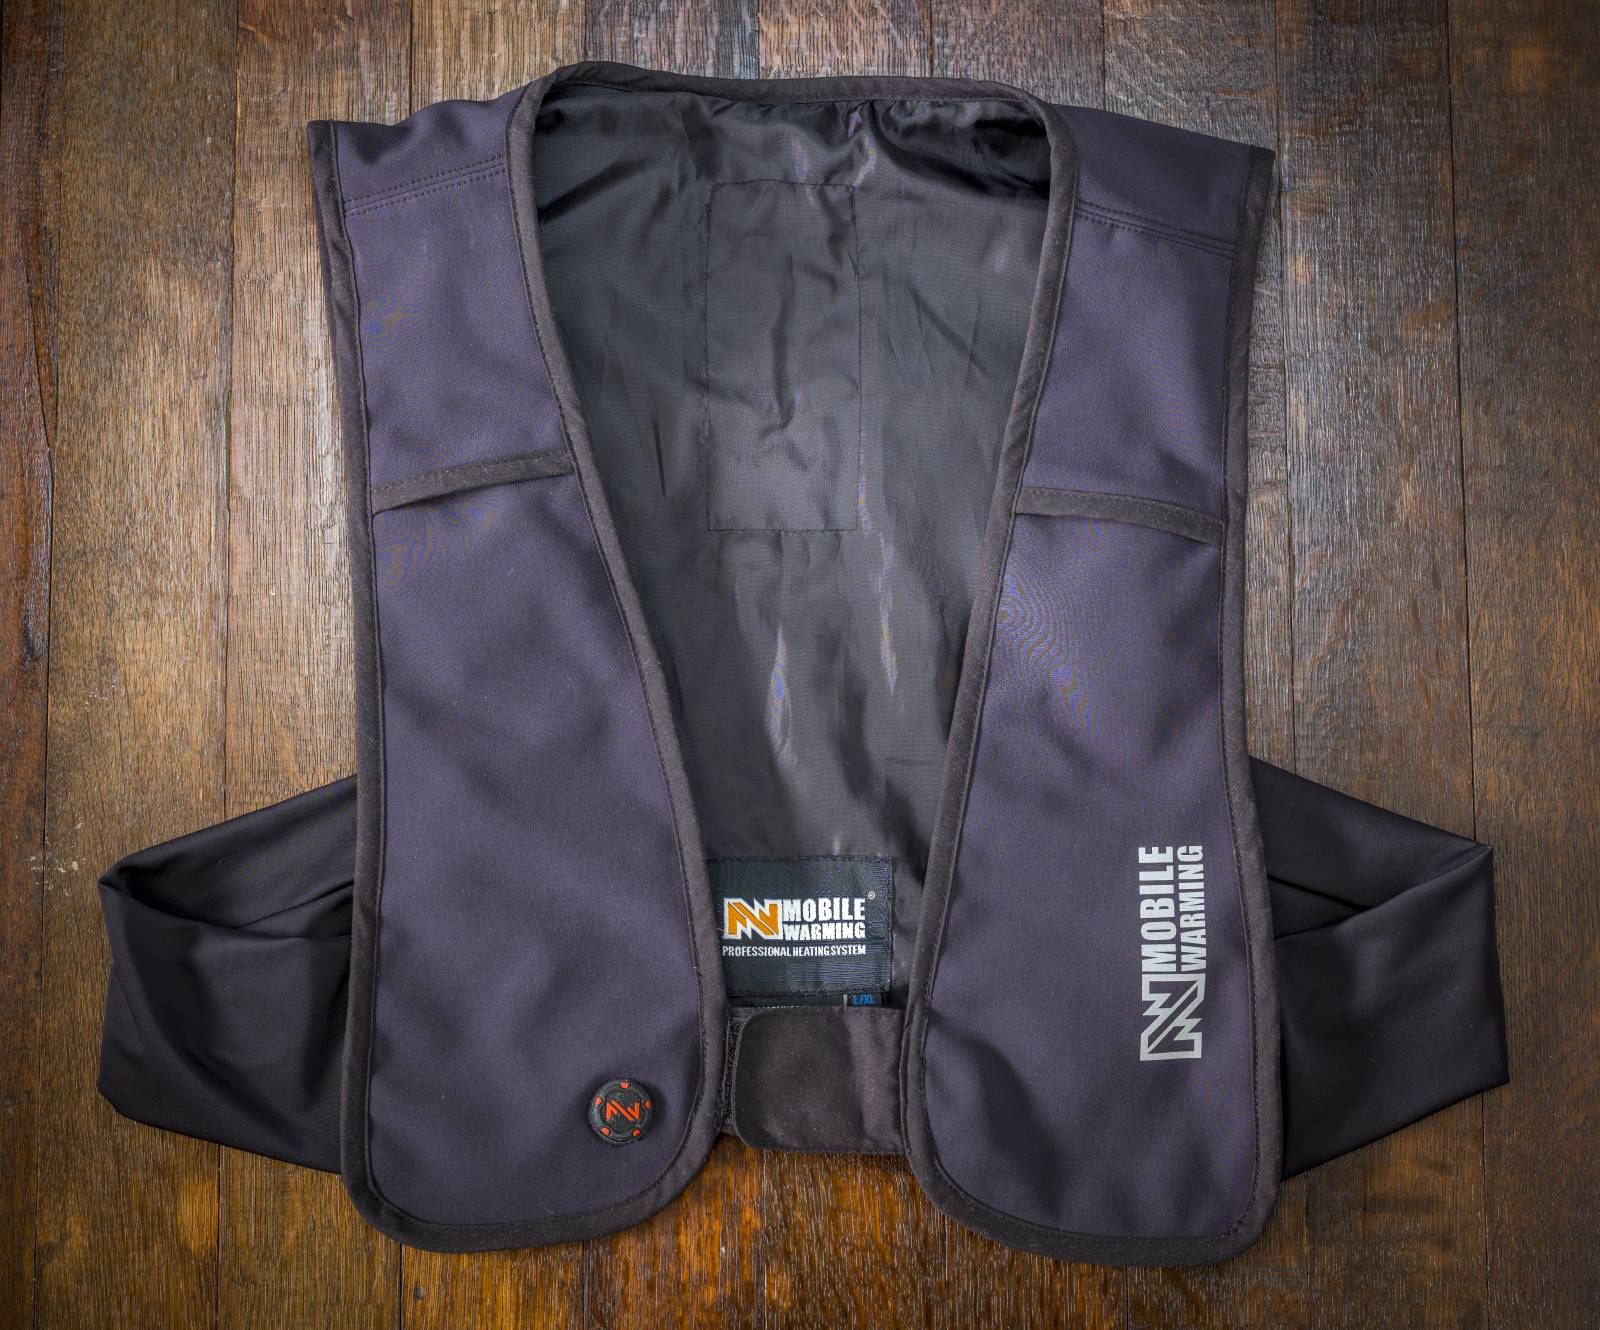 SXT Limitied Thaw daddy Heated Vest